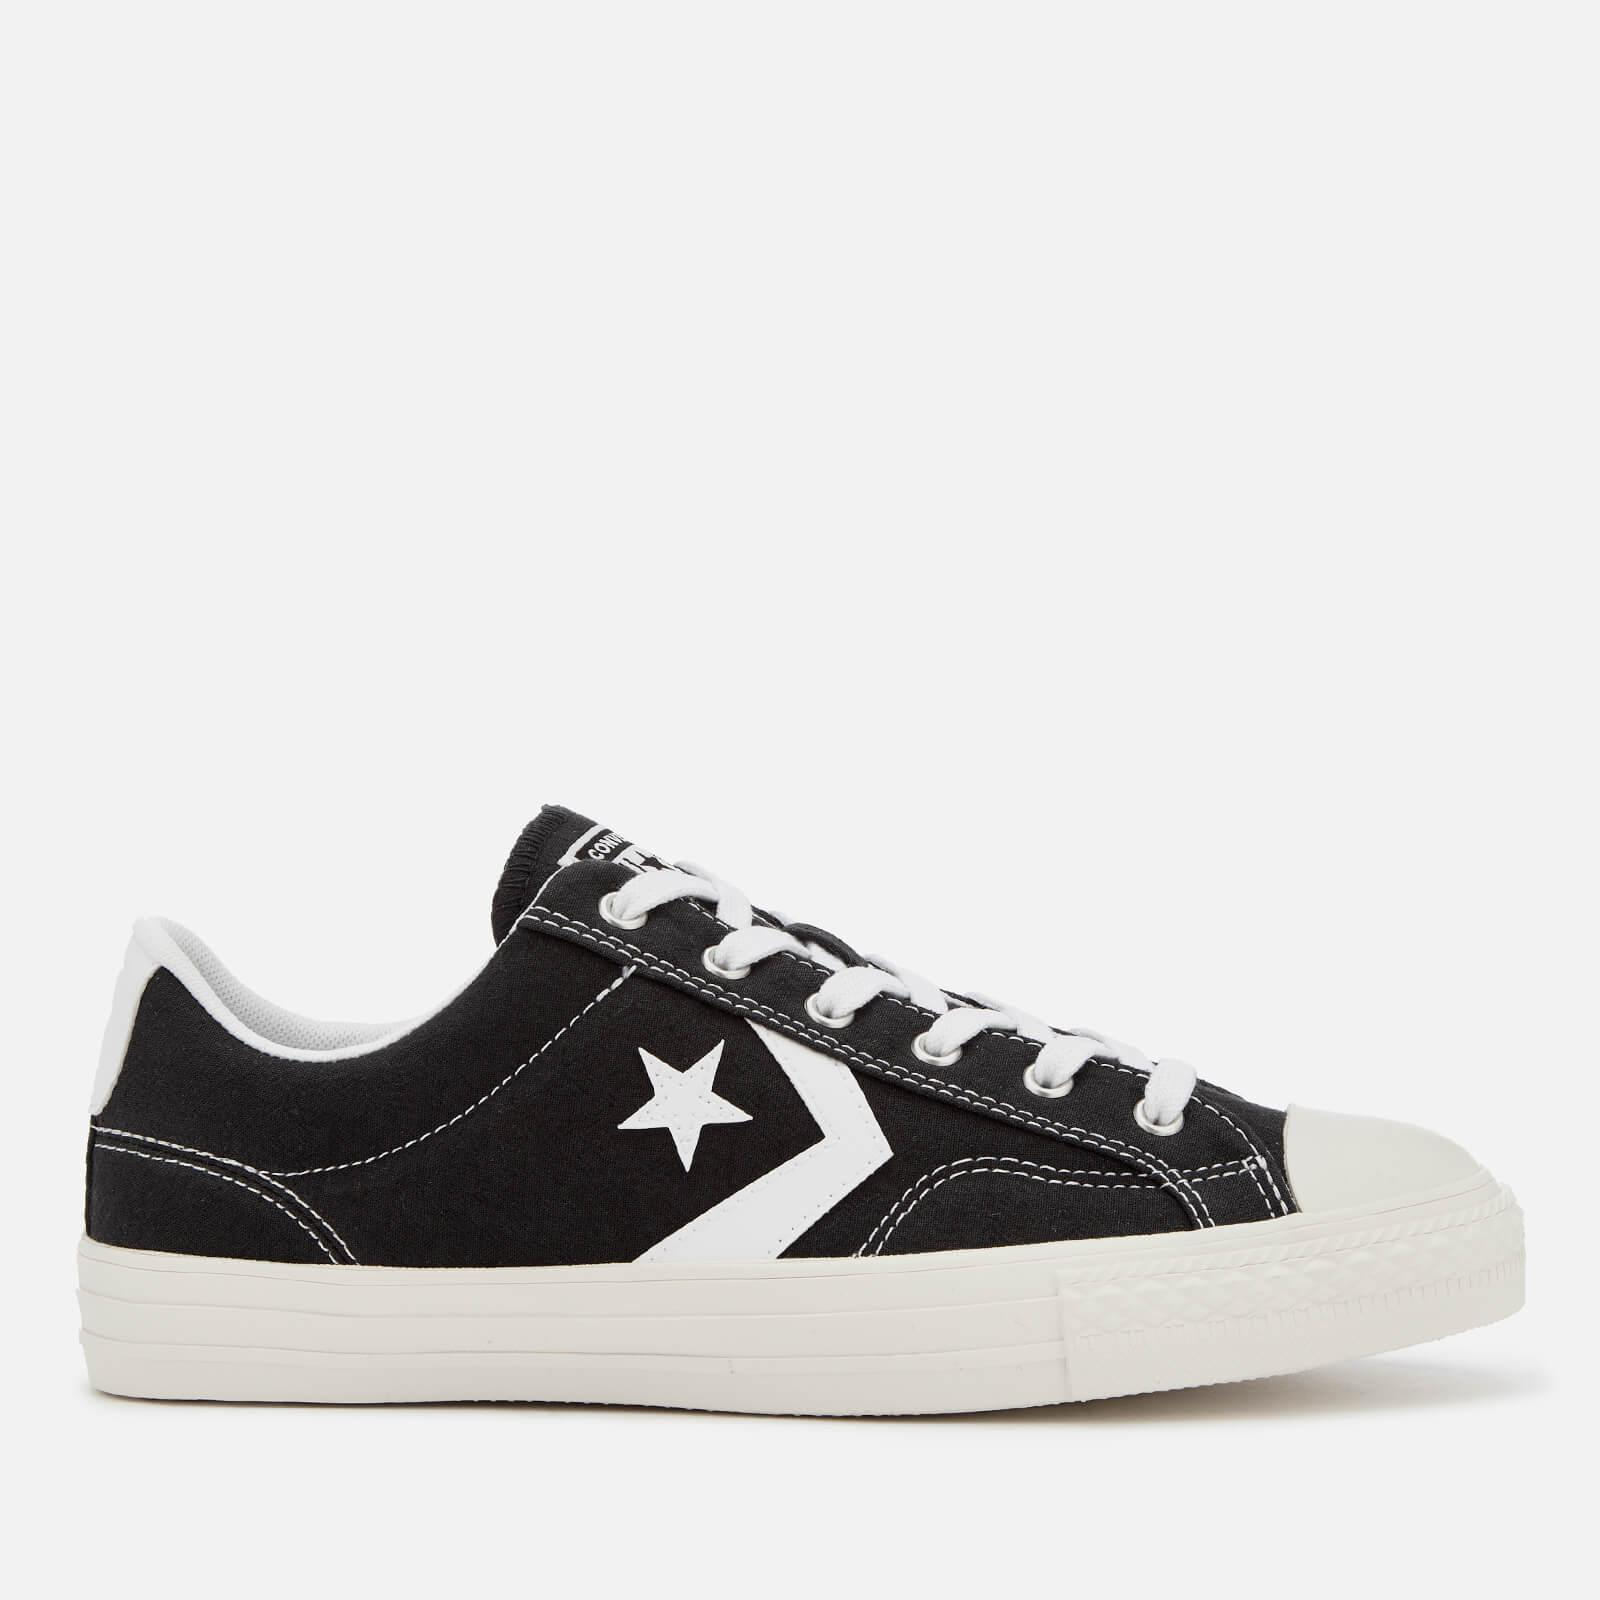 889e7ed573de Lyst - Converse Star Player Ox Trainers in Black for Men